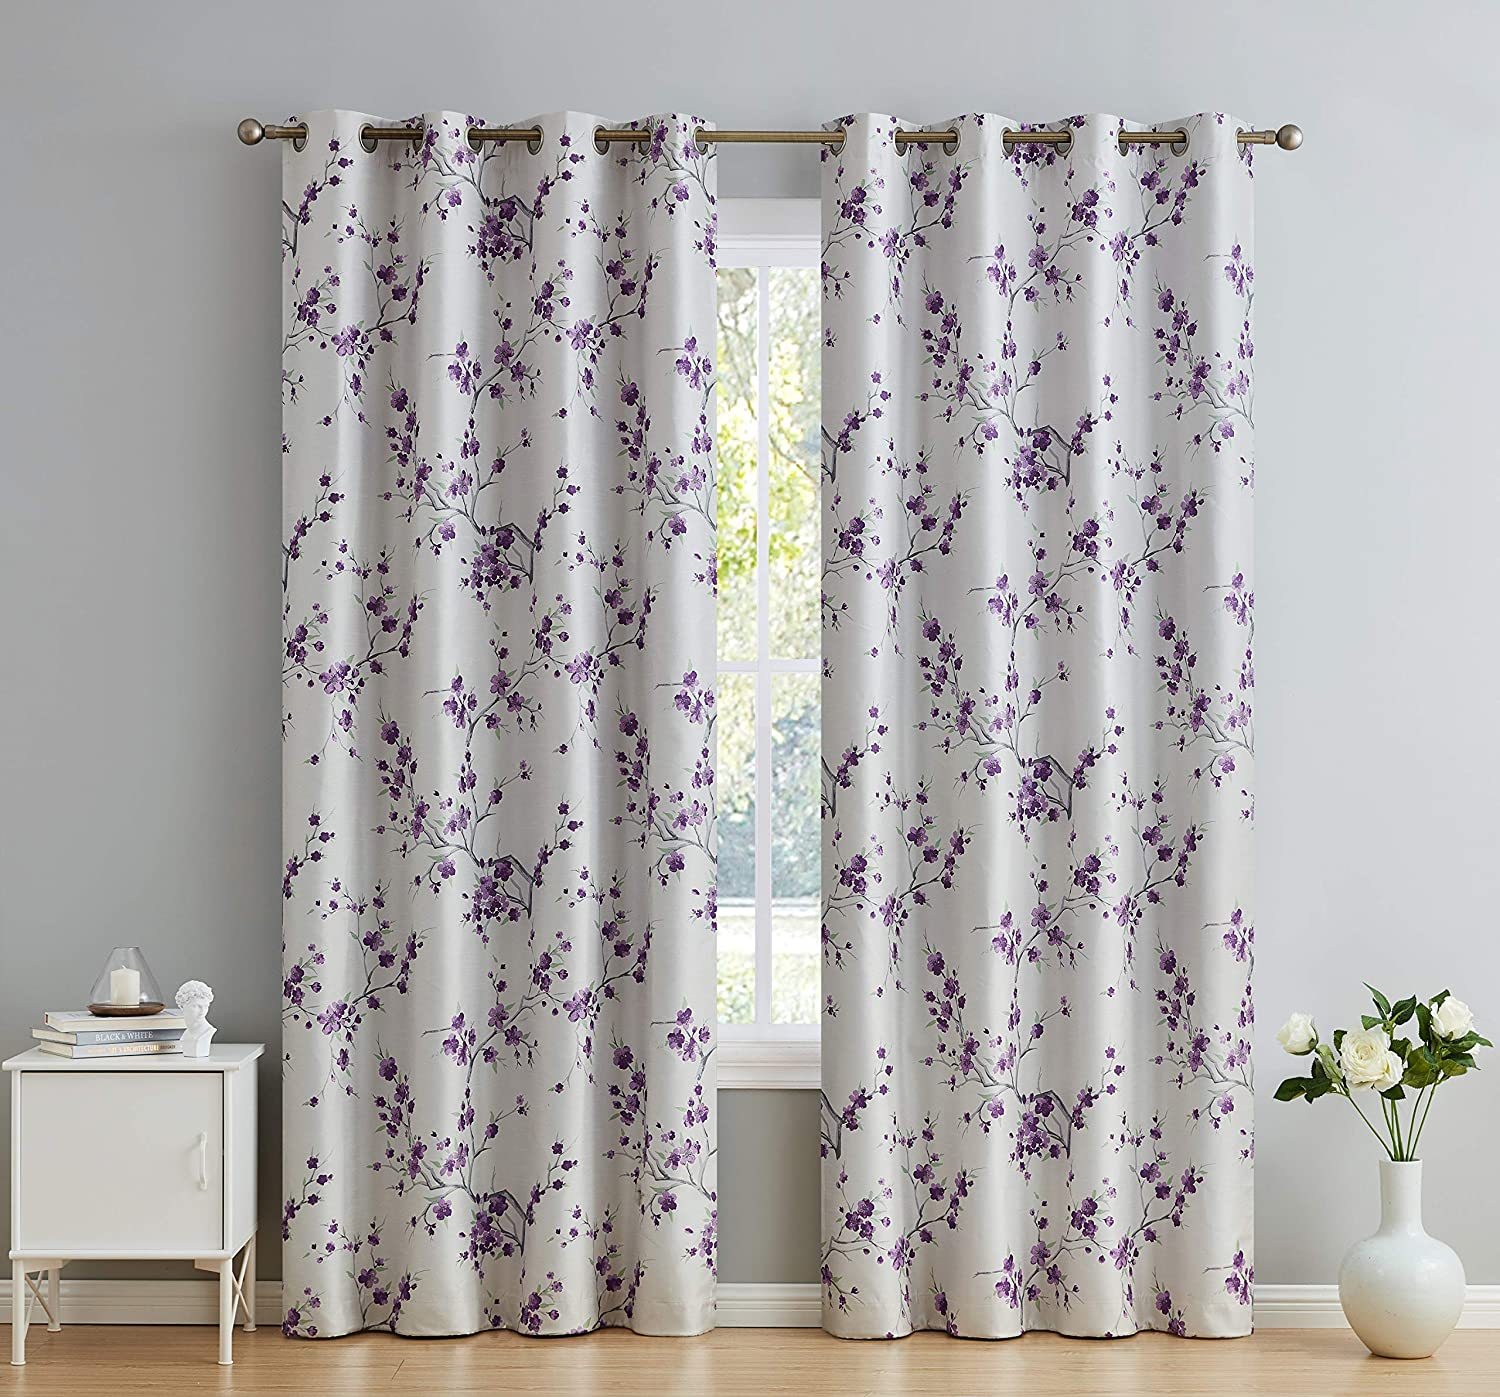 """HLC.ME Jasmine Floral Faux Silk 100% Blackout Room Darkening Thermal Insulated Curtain Grommet Panels For Bedroom -Energy Efficient, Complete Darkness, Noise Reducing- Set of 2 (Purple, 52"""" W x 63"""" L)"""